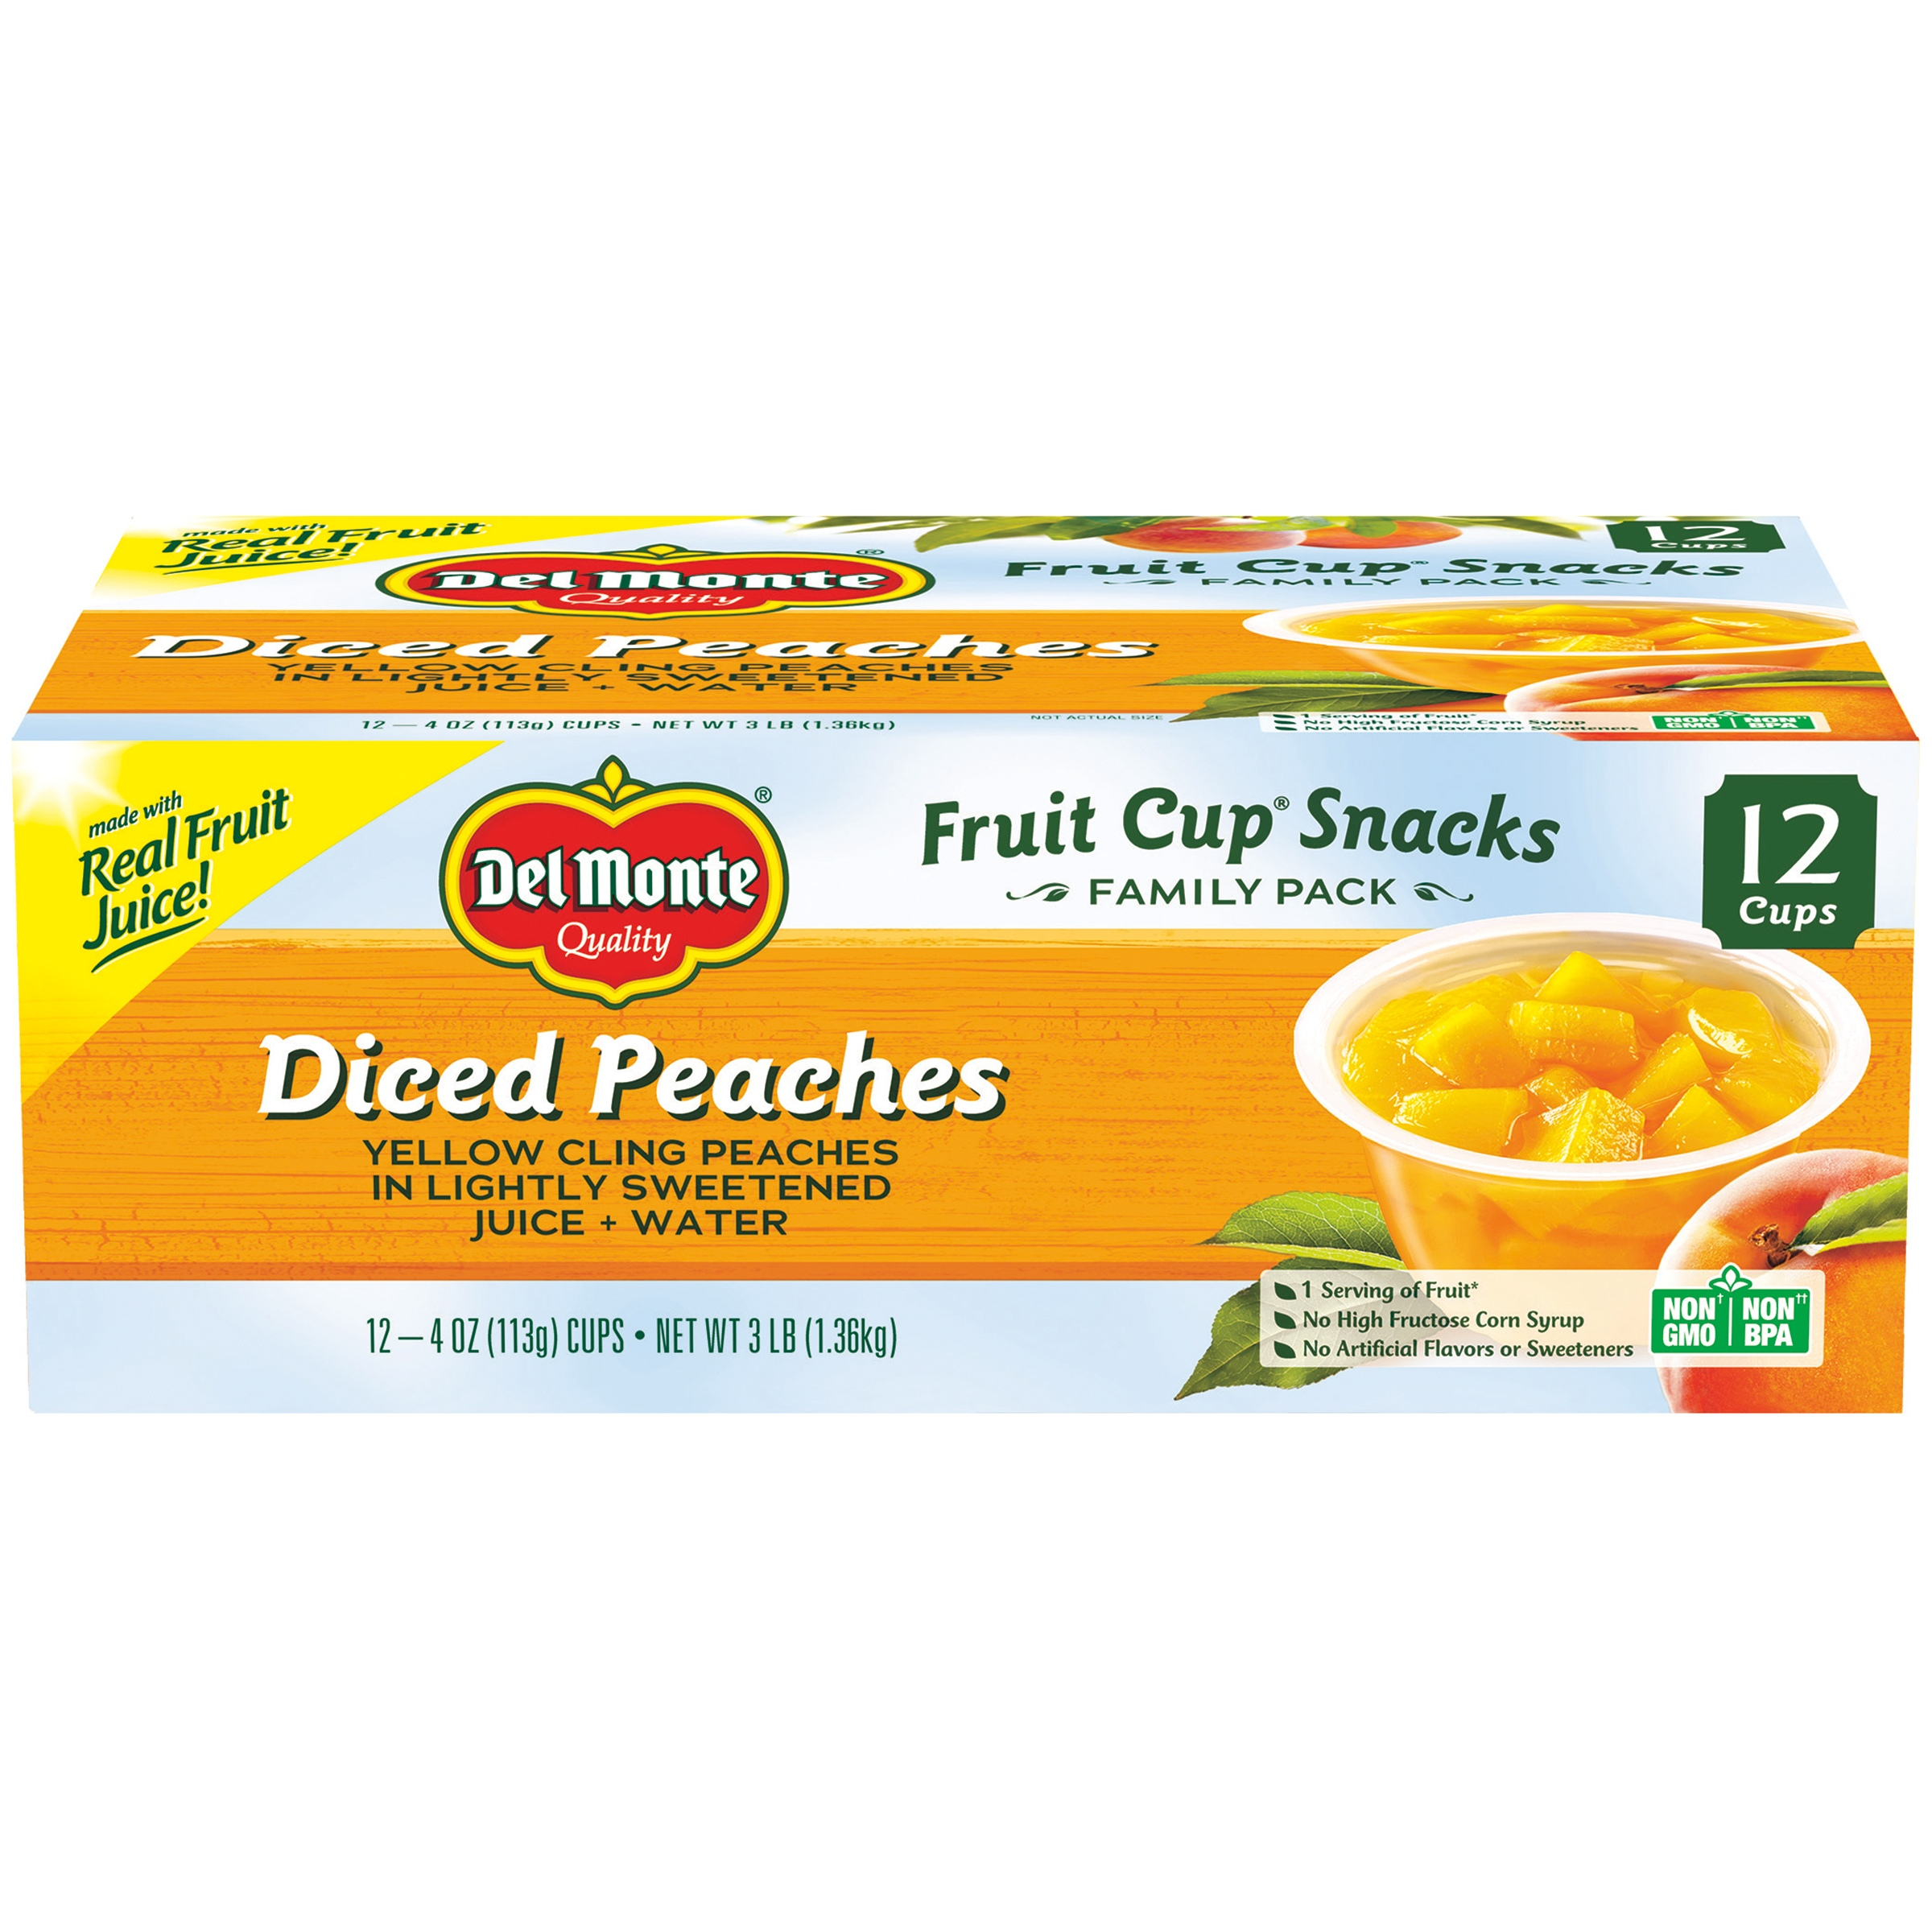 (12 Cups) Del Monte Fruit Cup Snacks Diced Peaches, 4 oz cups